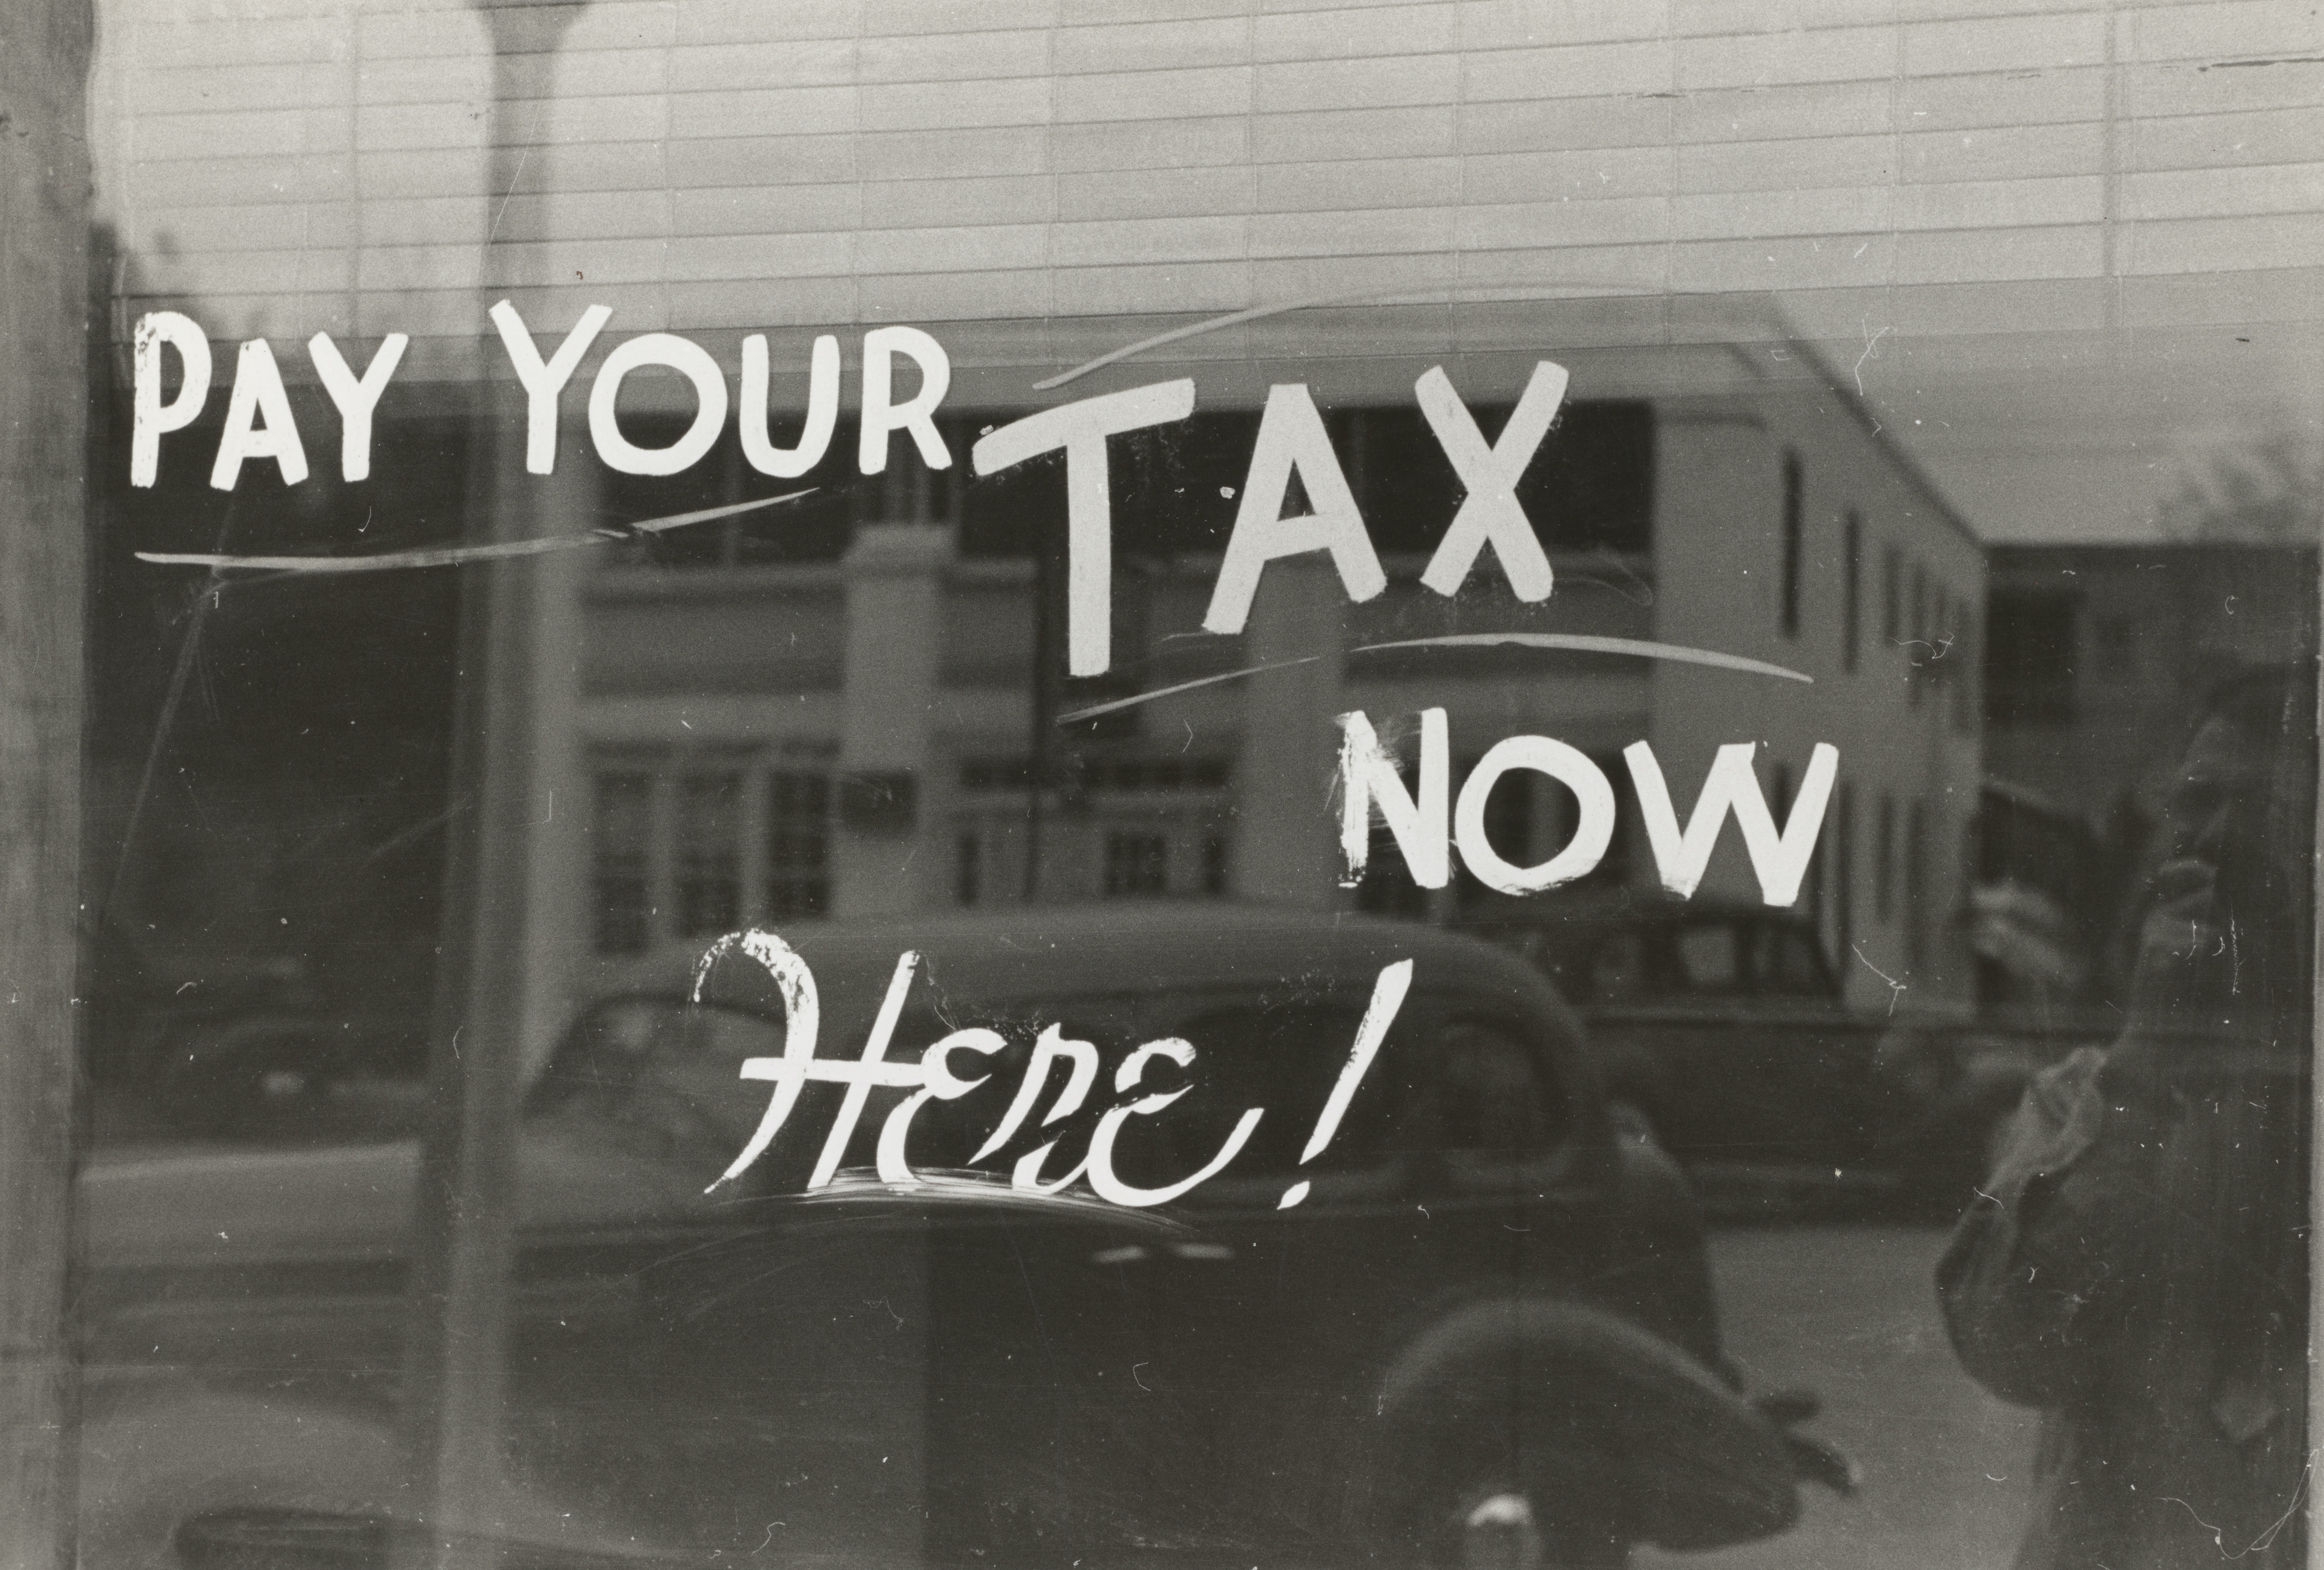 """A Window with writing on saying """"Pay Your Tax Now Here"""""""